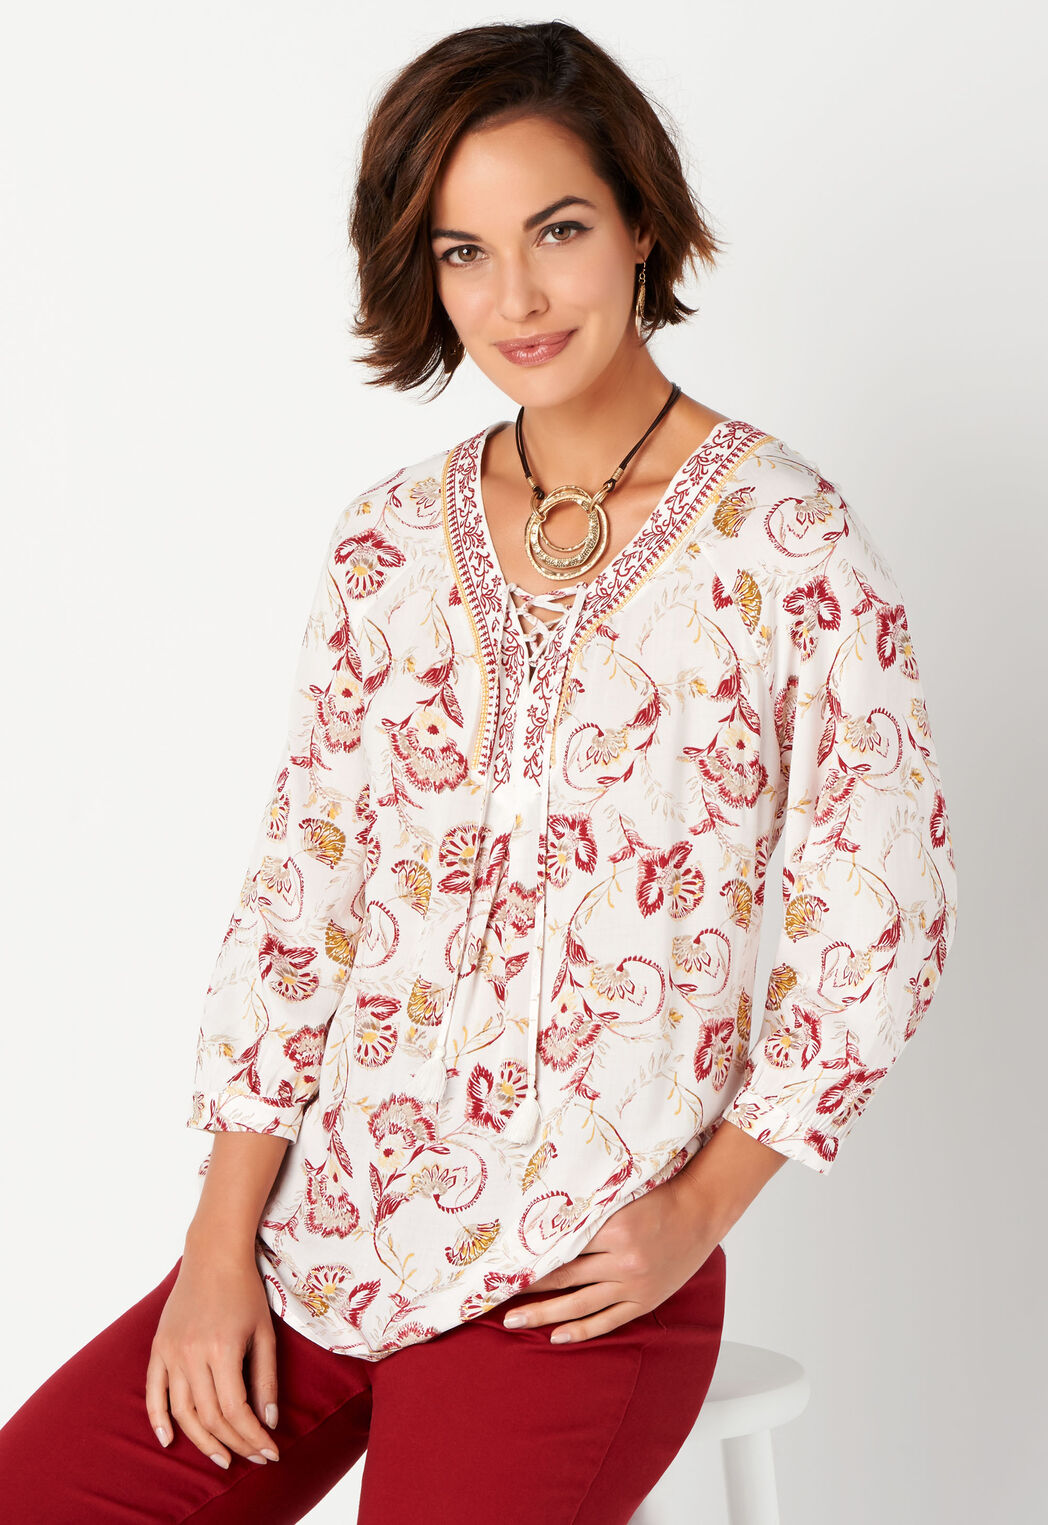 d3388b134c2 Women's Embr Neck Printed Blouse from Christopher & Banks®